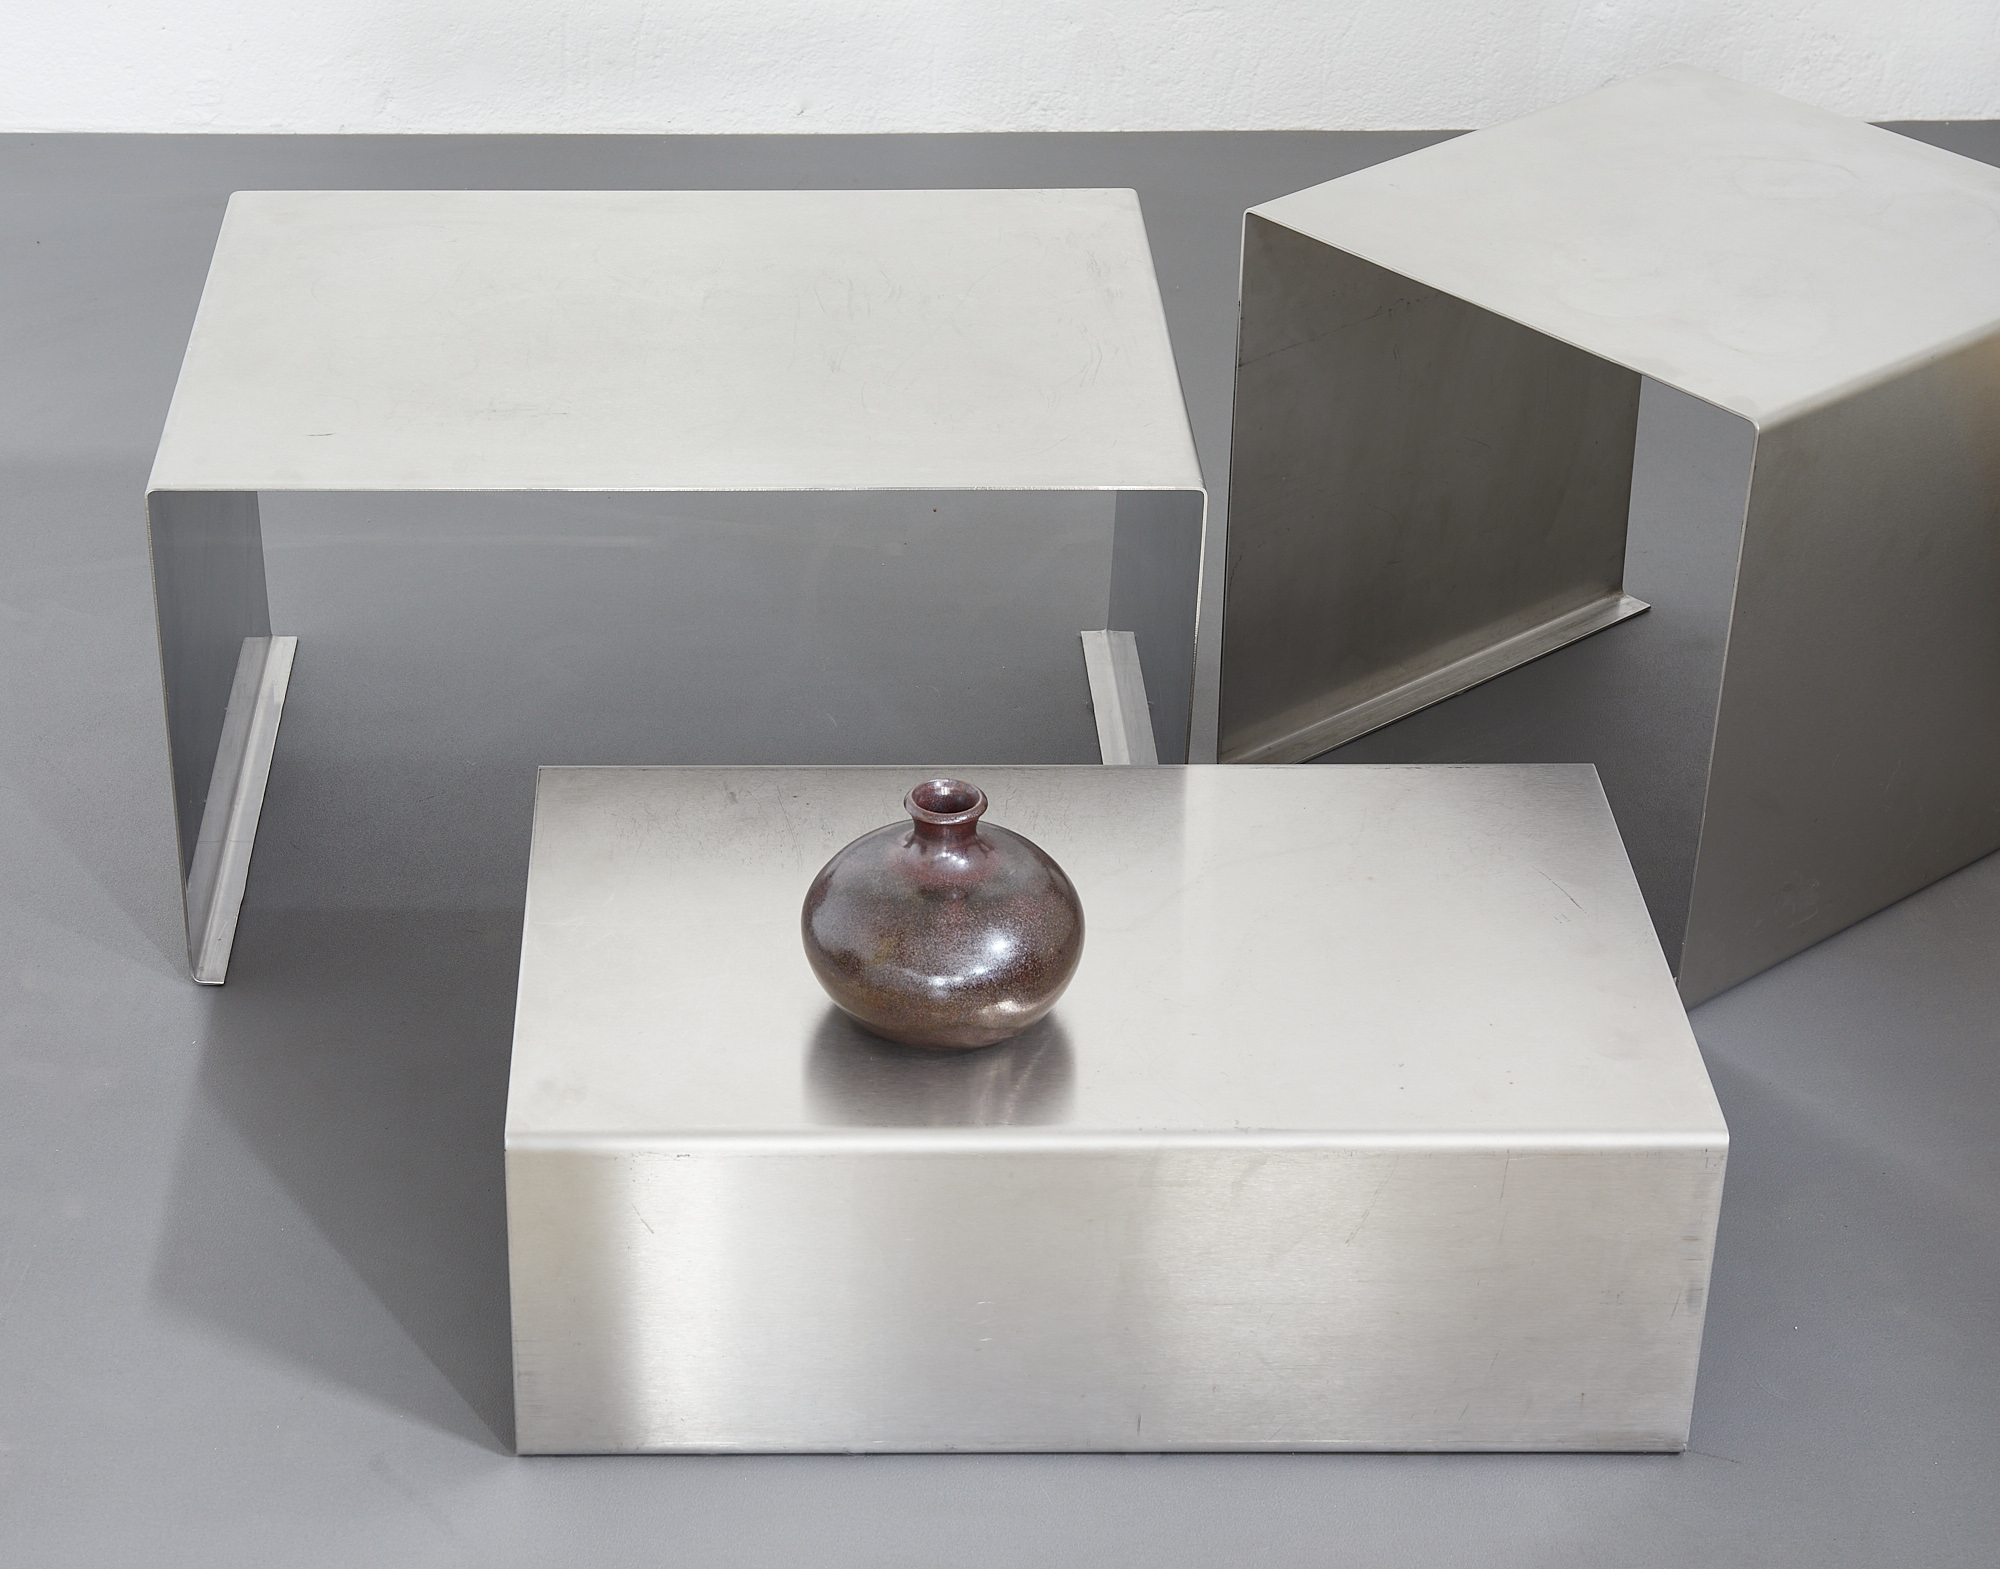 set-of-low-tables-in-brushed-metal-1970-1980-image-08